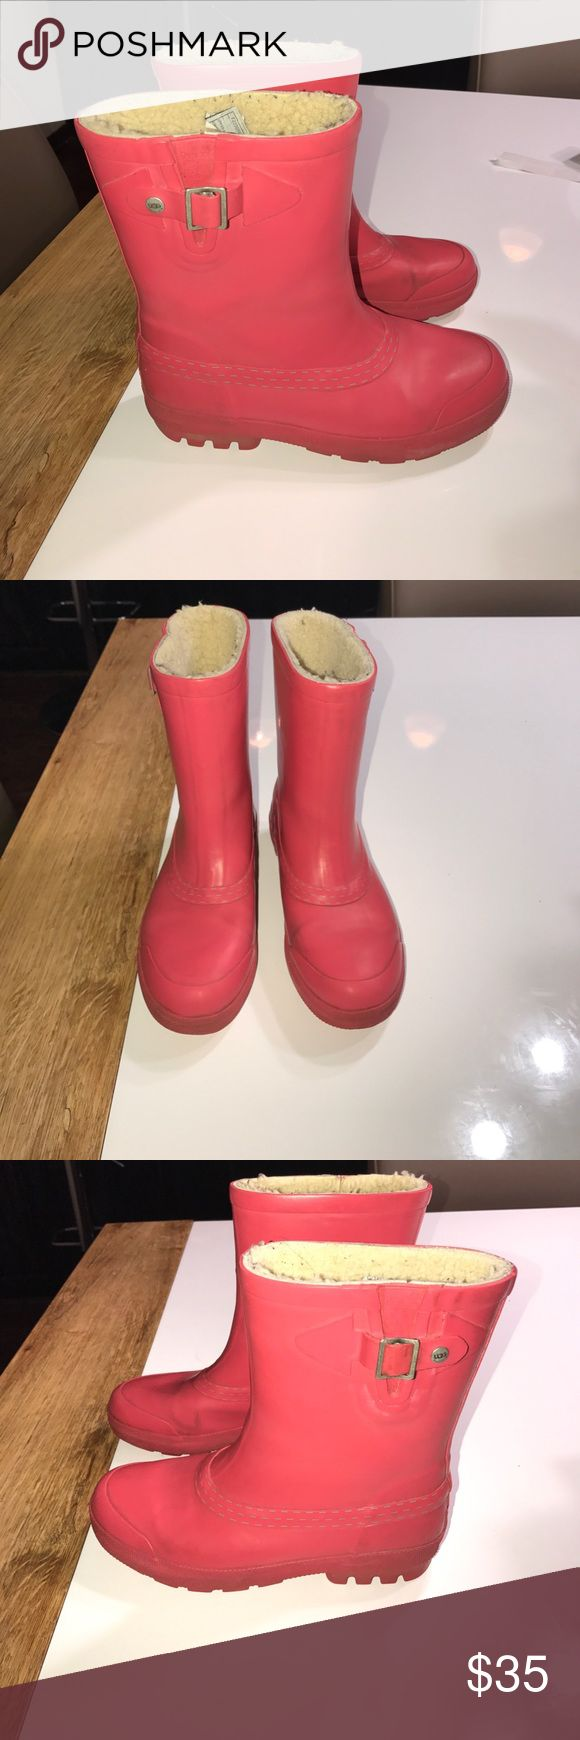 Authentic UGG pink rain boots sz 6 Authentic UGG pink rain boots sz 6 good condition have some light scuffs throughout and some light wear to Sherpa lining UGG Shoes Winter & Rain Boots